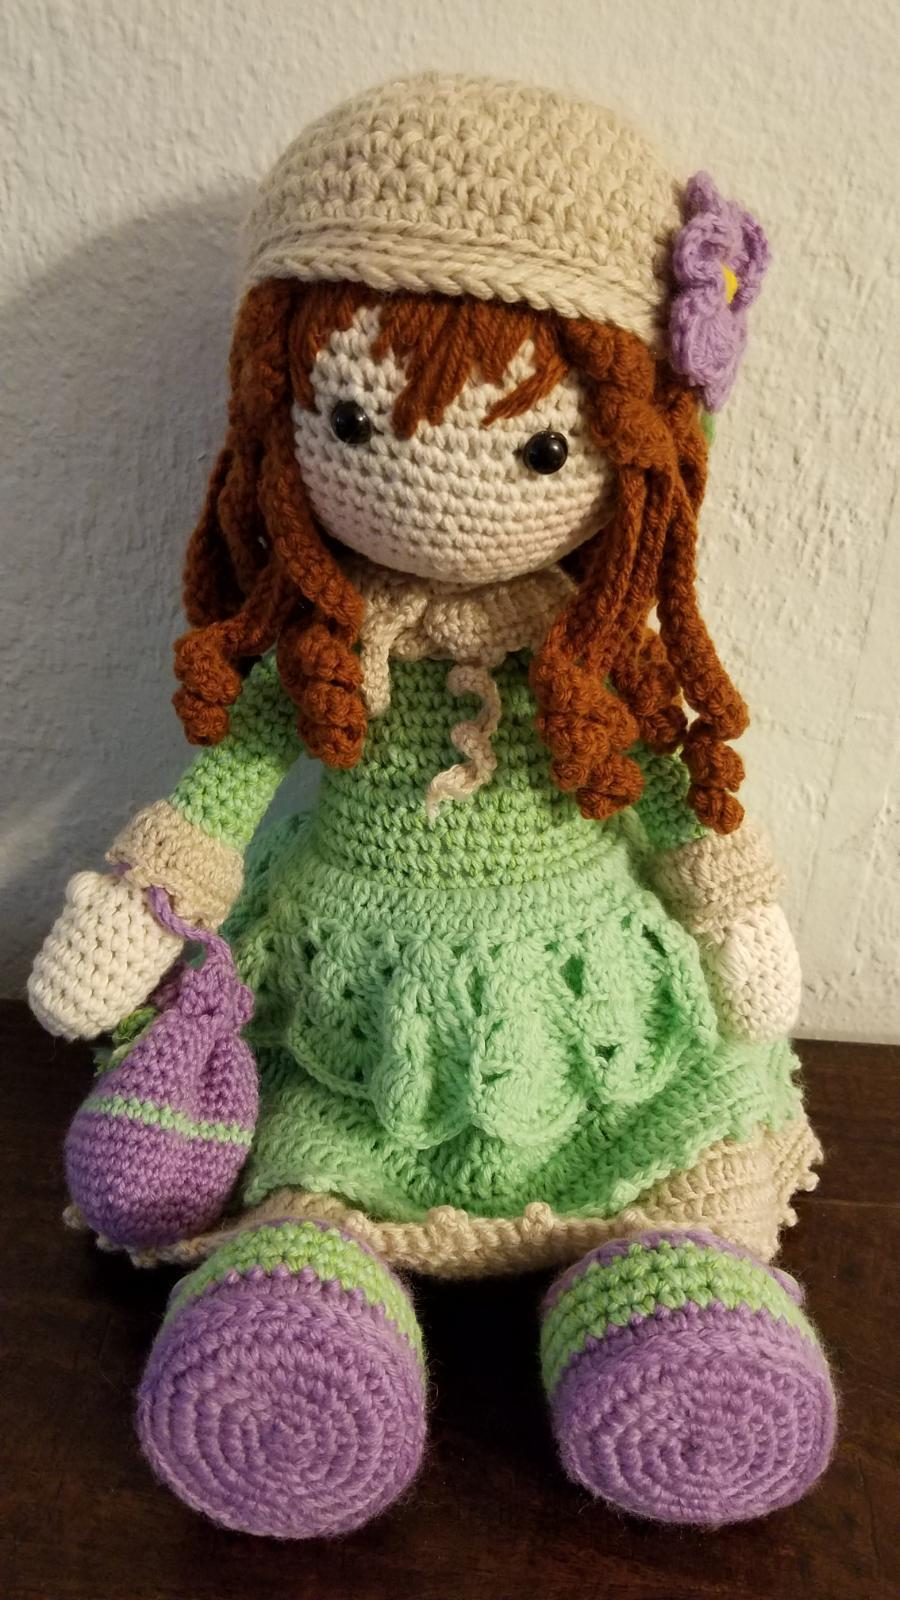 New Russian Hand Crafted Knitted Doll 15 Inch Unique Handmade Doll in Dress